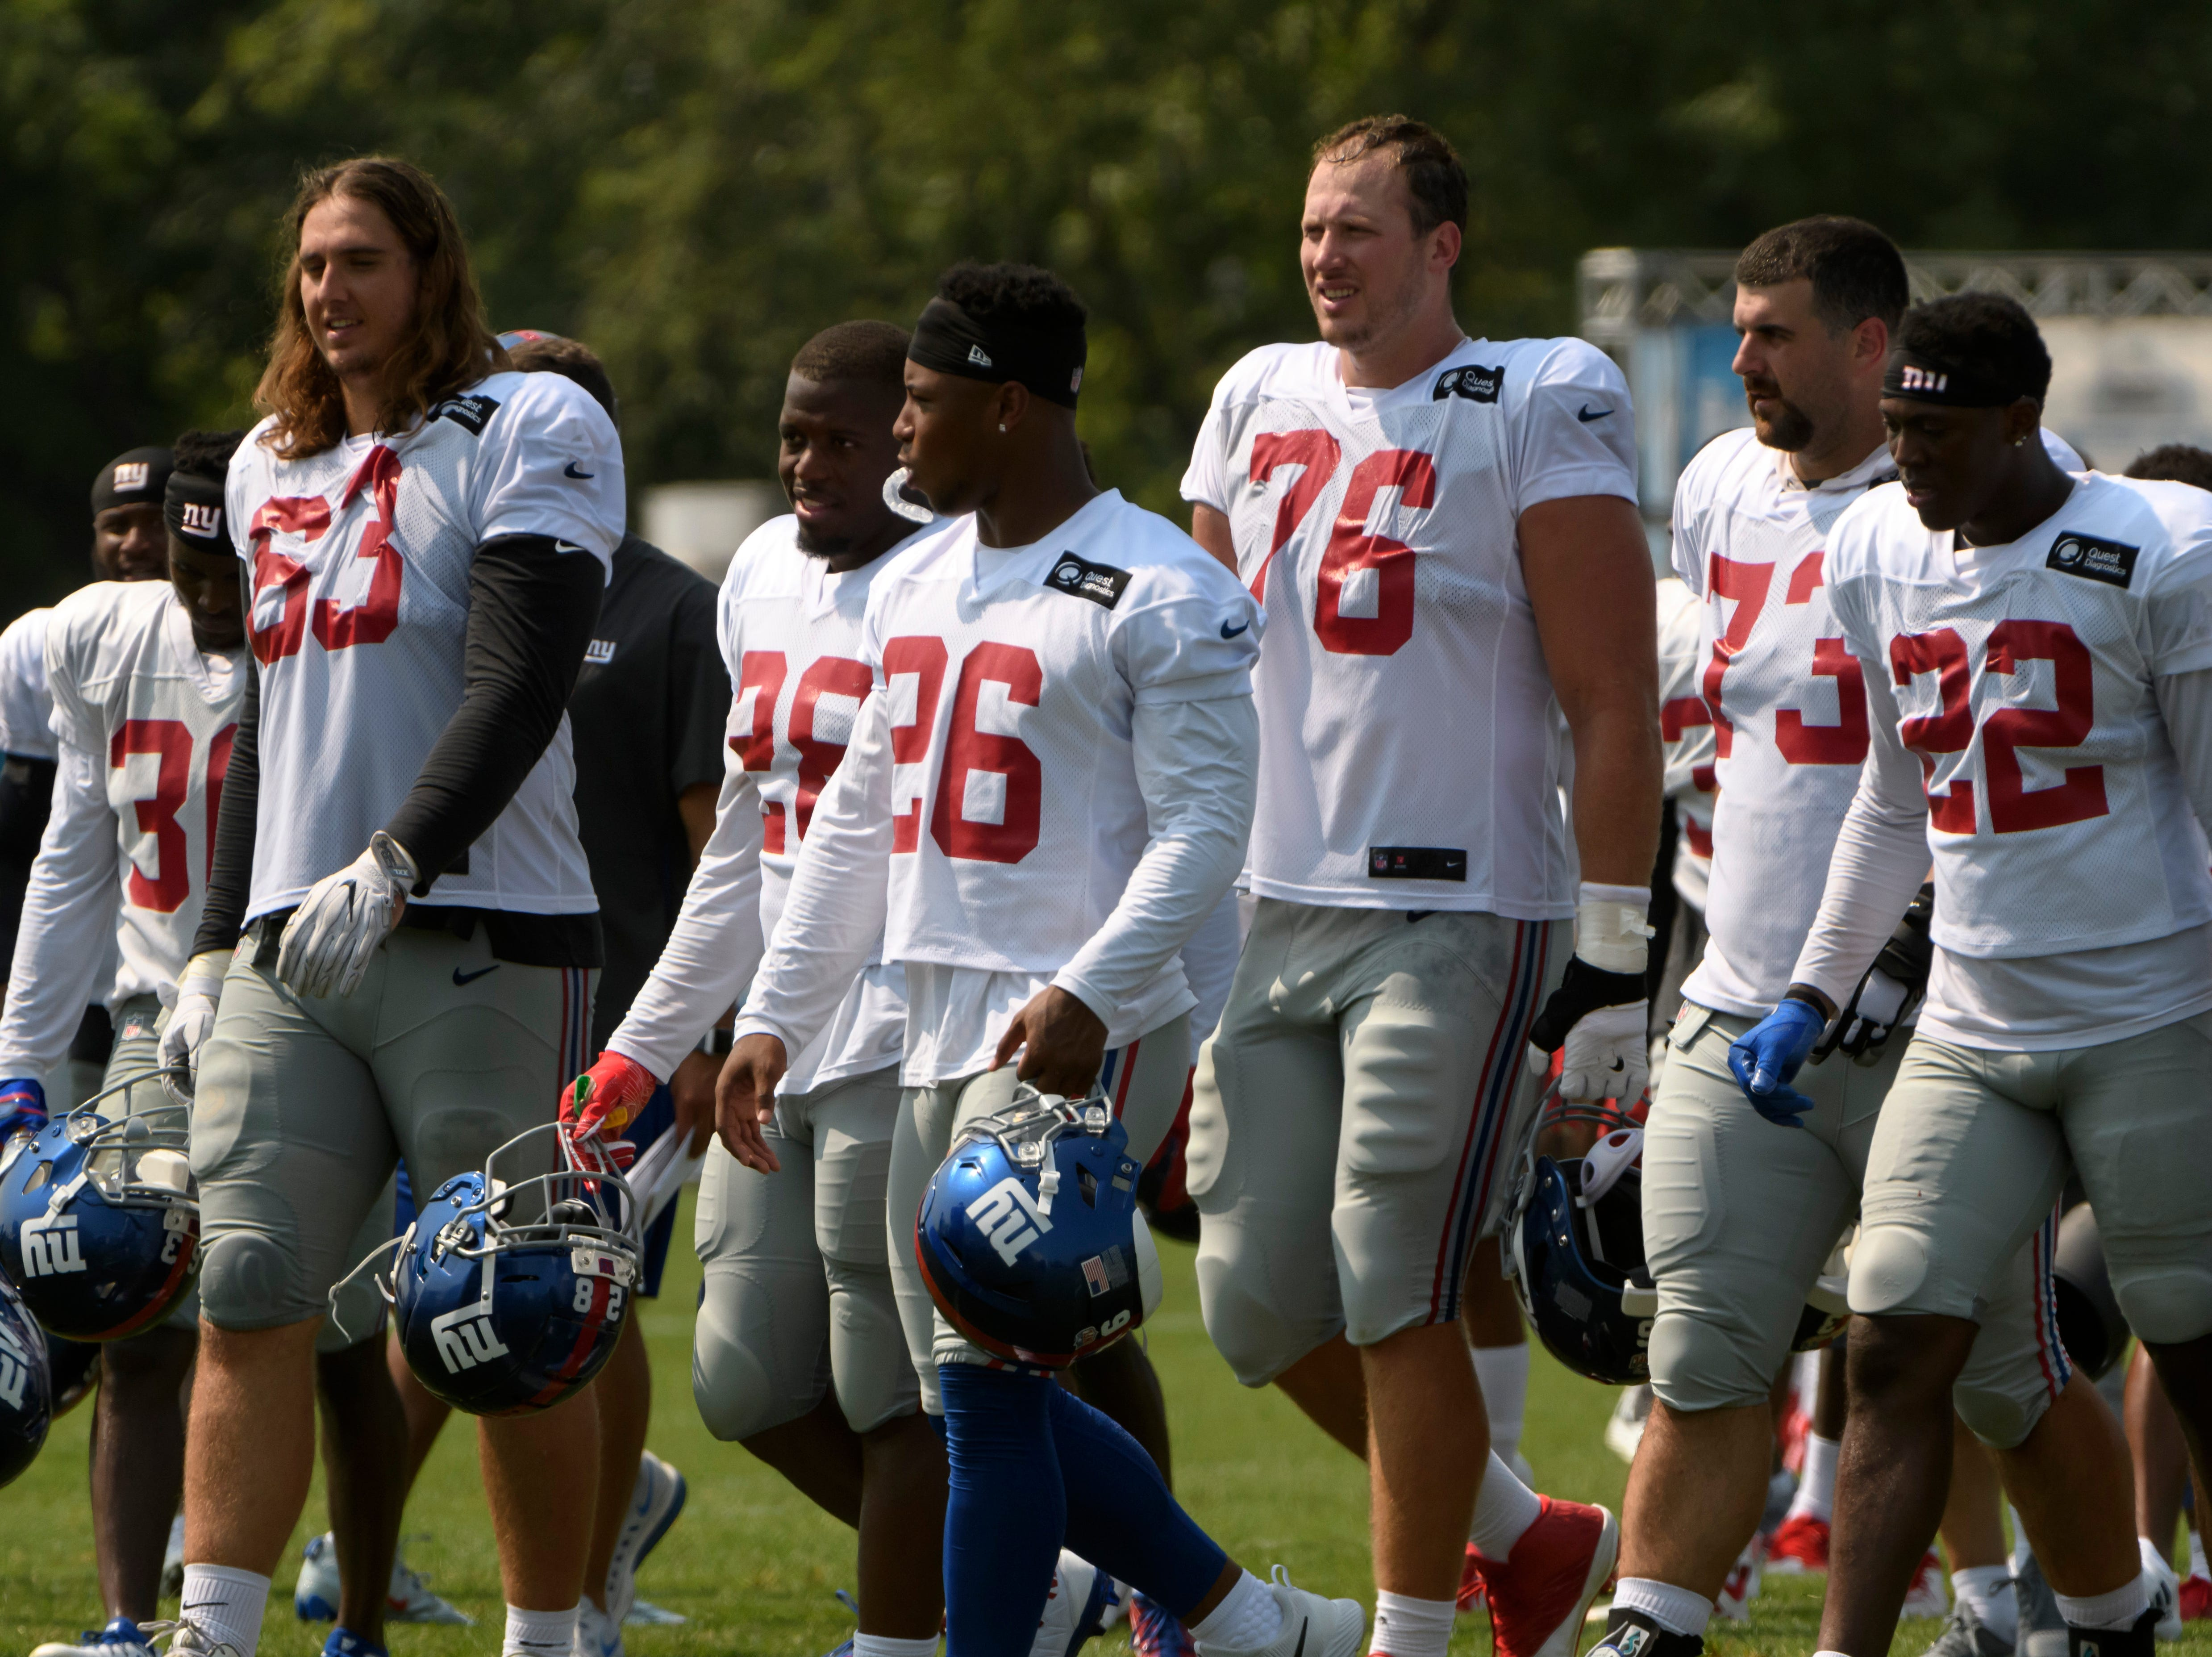 The New York Giants walk off the field after practice.